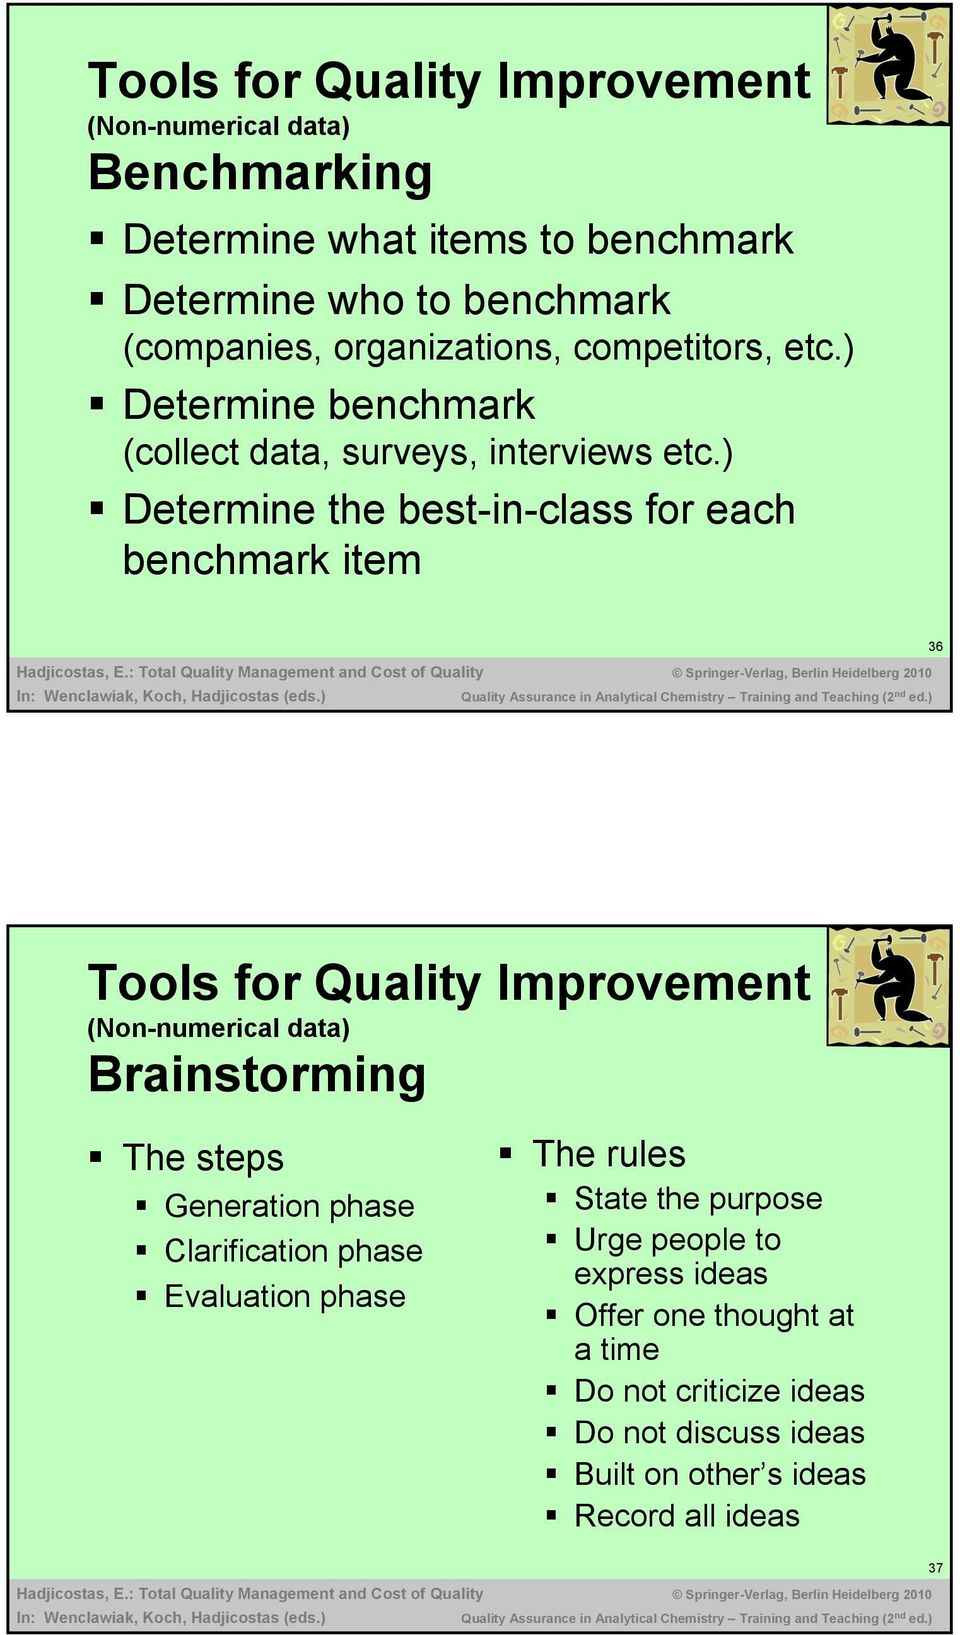 ) Determine the best-in-class for each benchmark item 36 Tools for Quality Improvement (Non-numerical data) Brainstorming The steps Generation